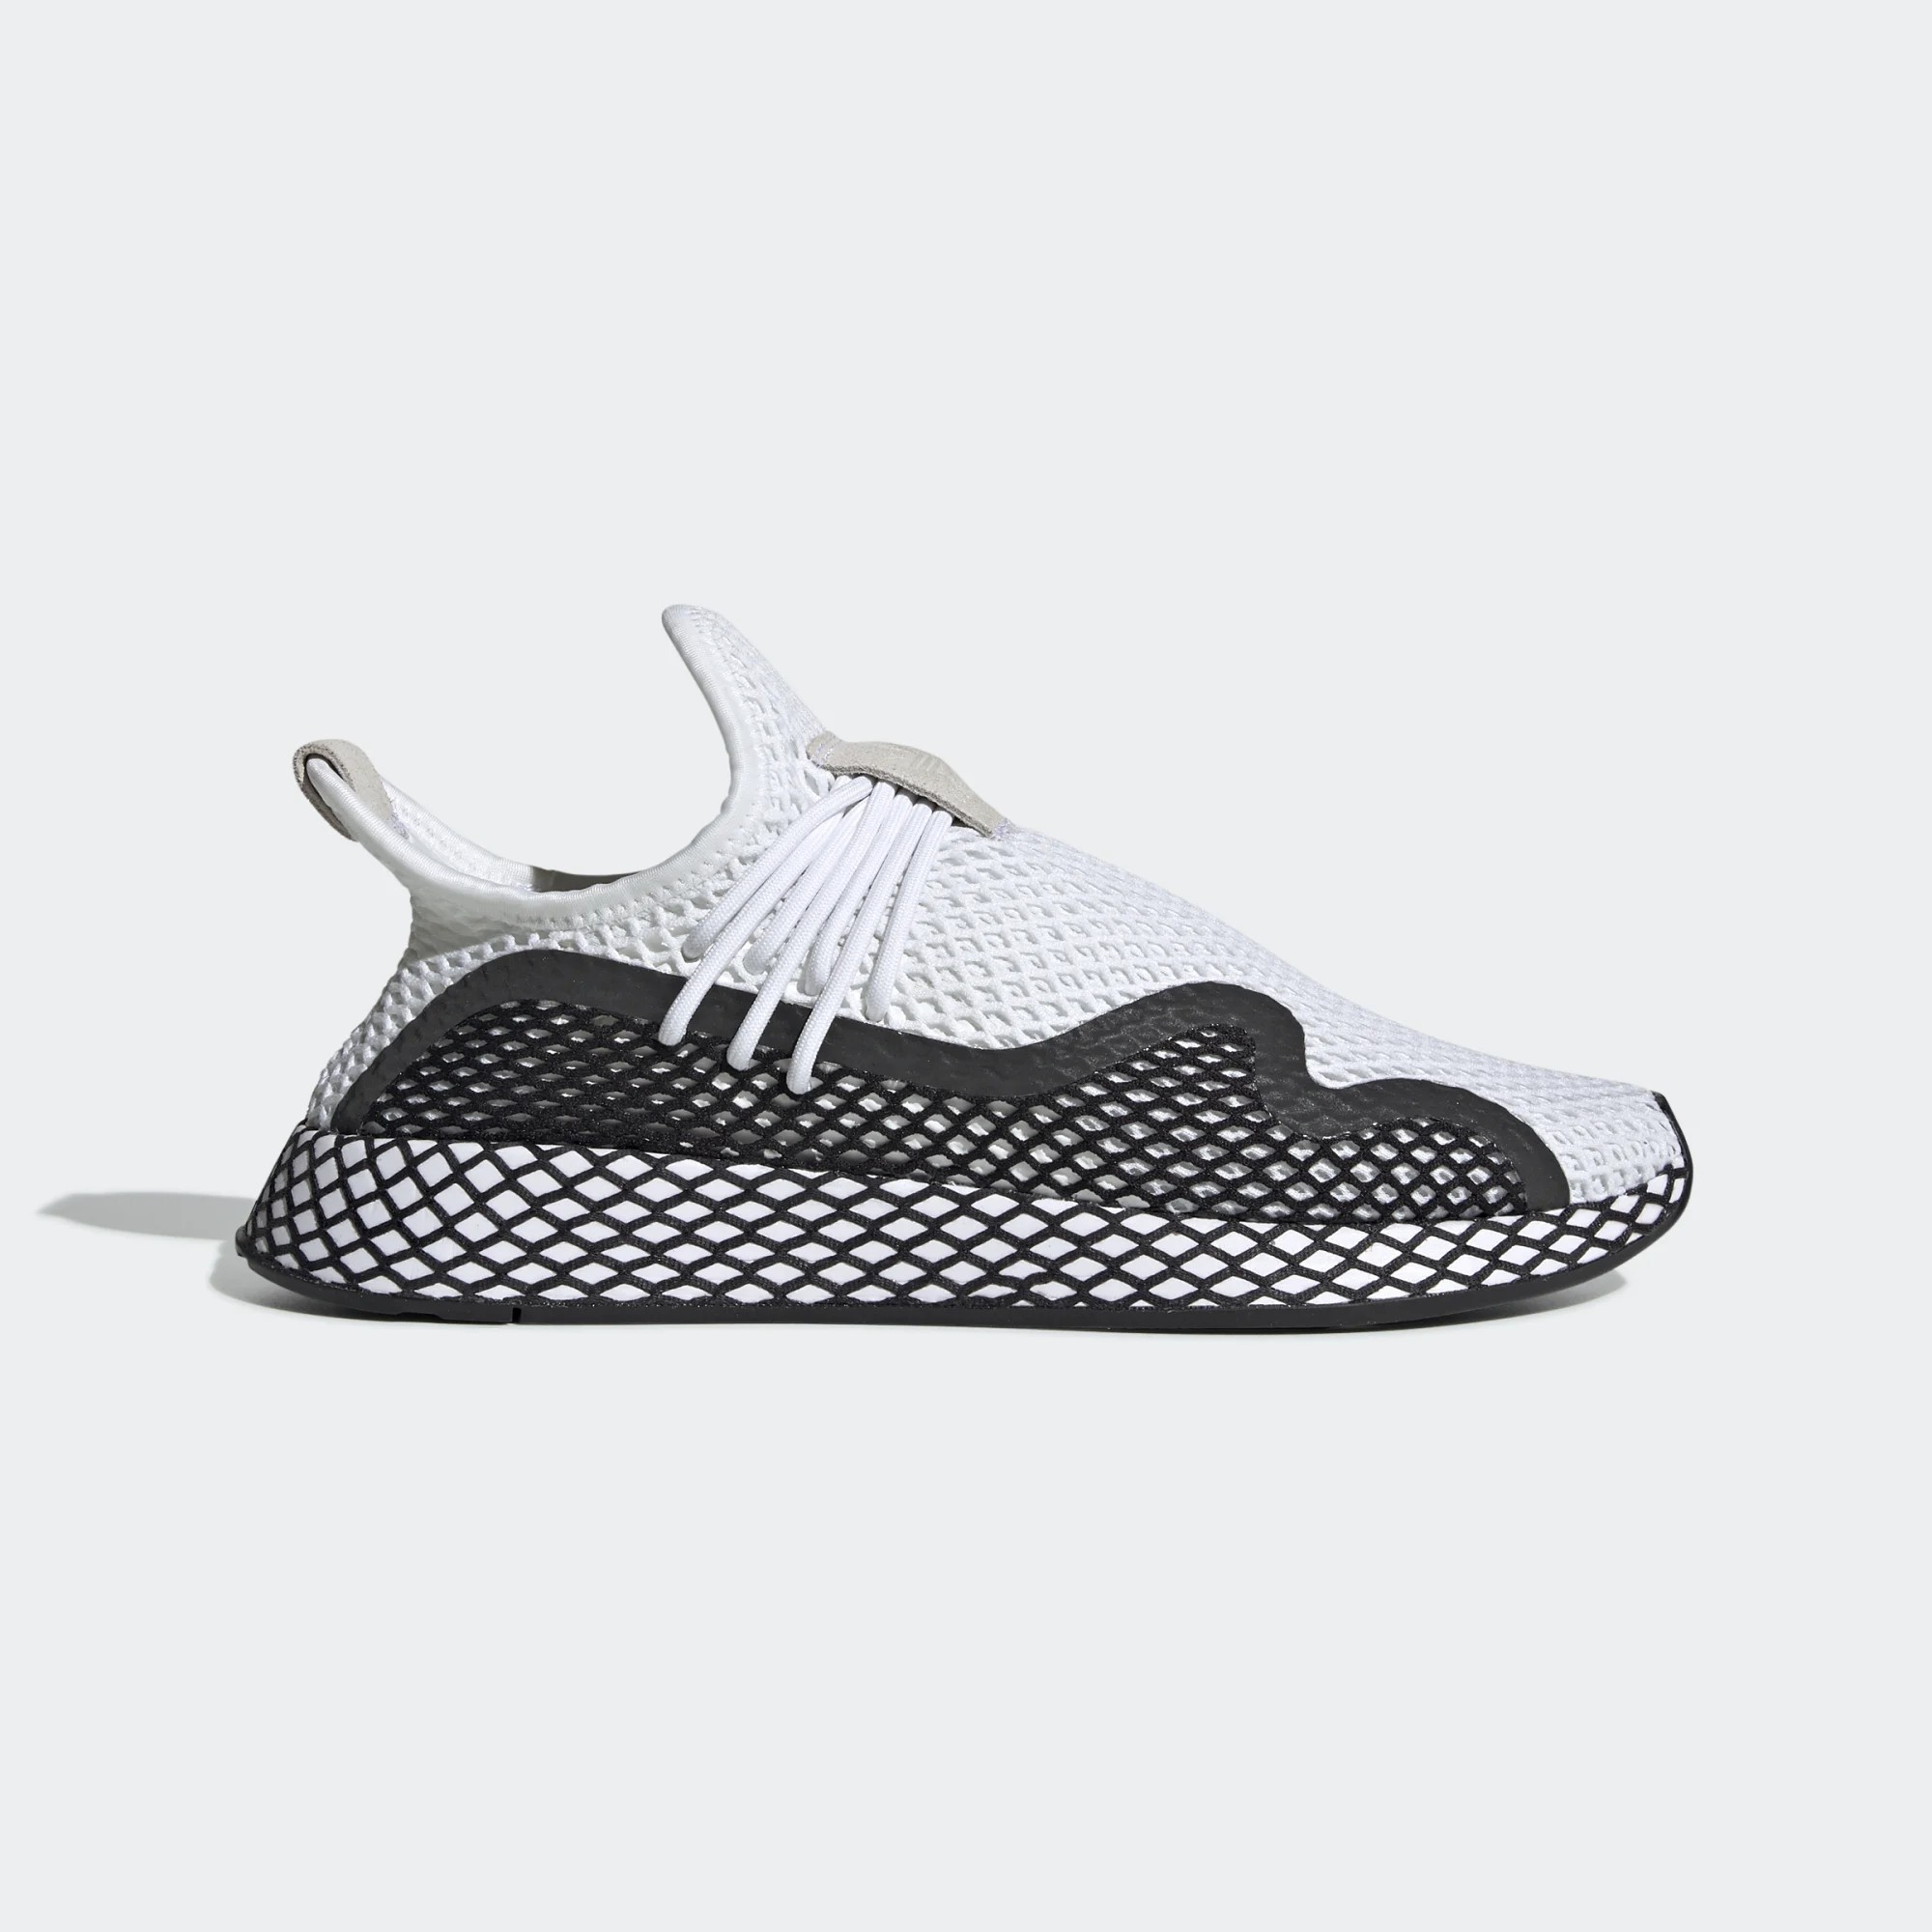 adidas Originals Deerupt New Runner Blanche Sneakers BD7874